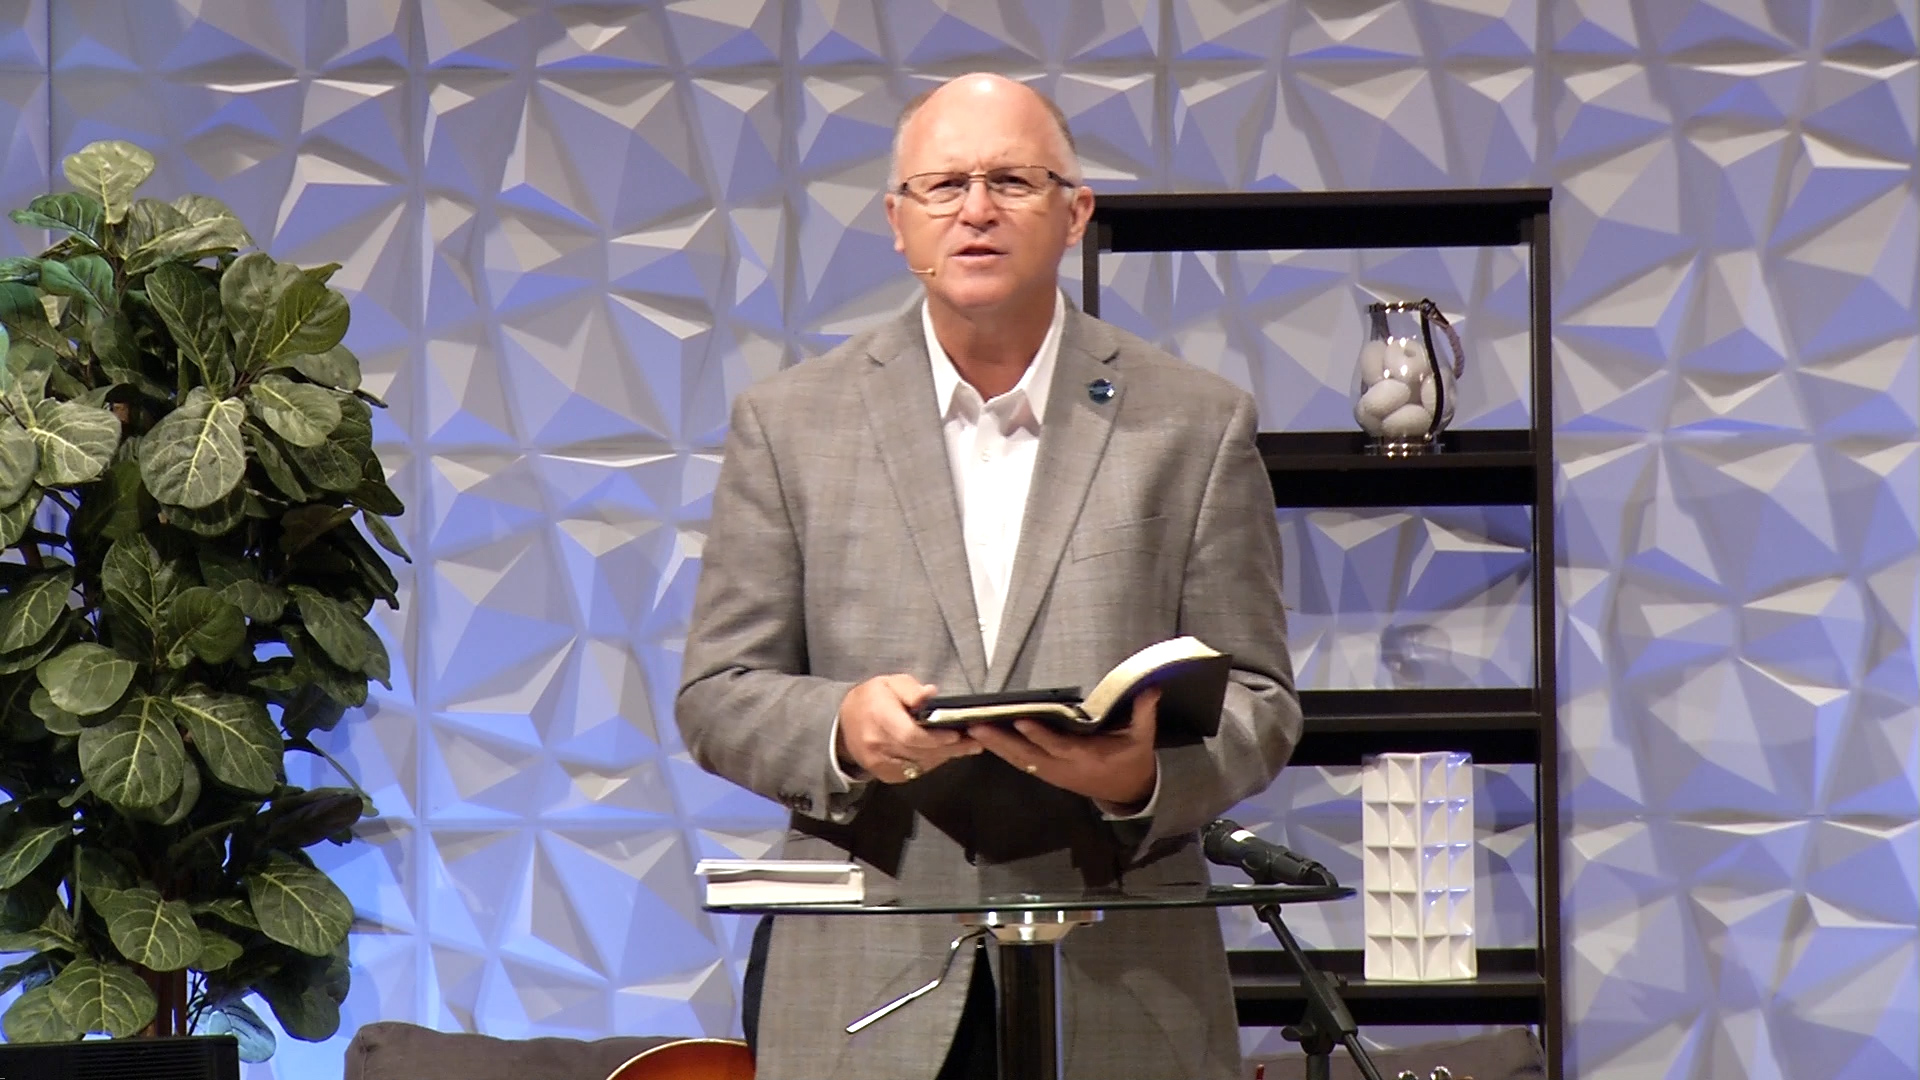 Pastor Paul Chappell: The Priority of Prayer